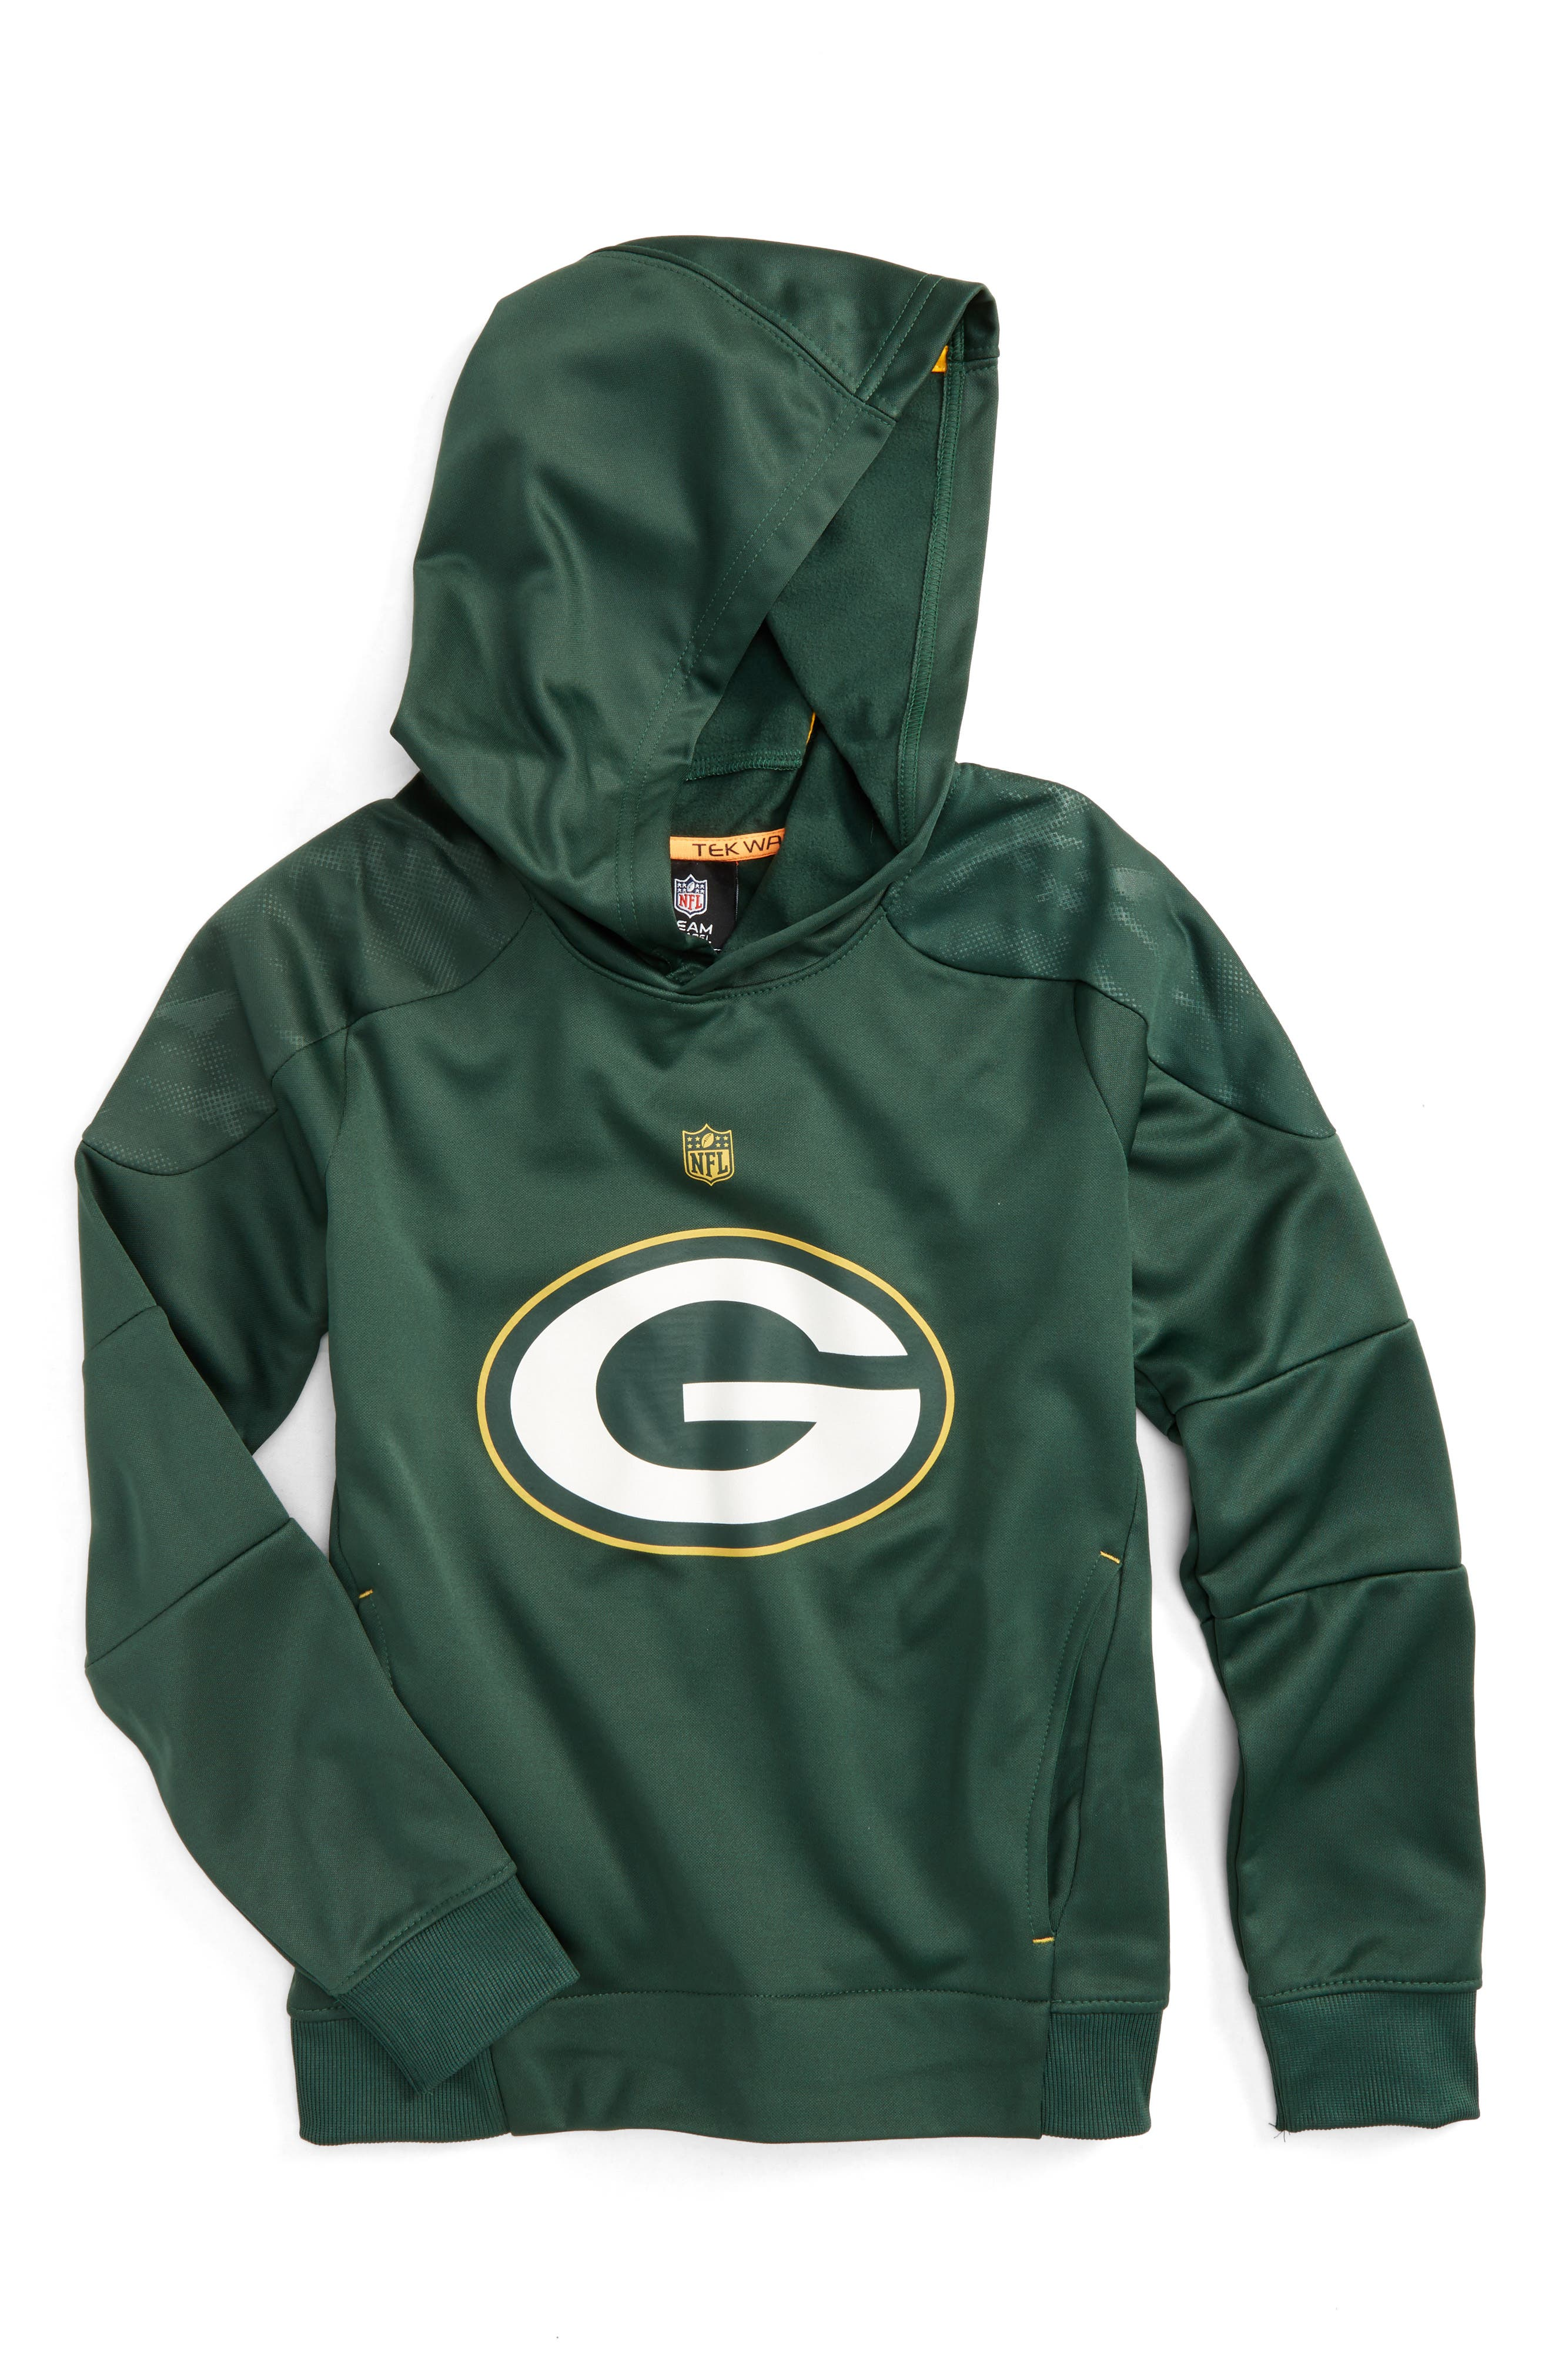 Main Image - Outerstuff NFL Green Bay Packers Hoodie (Big Boys)